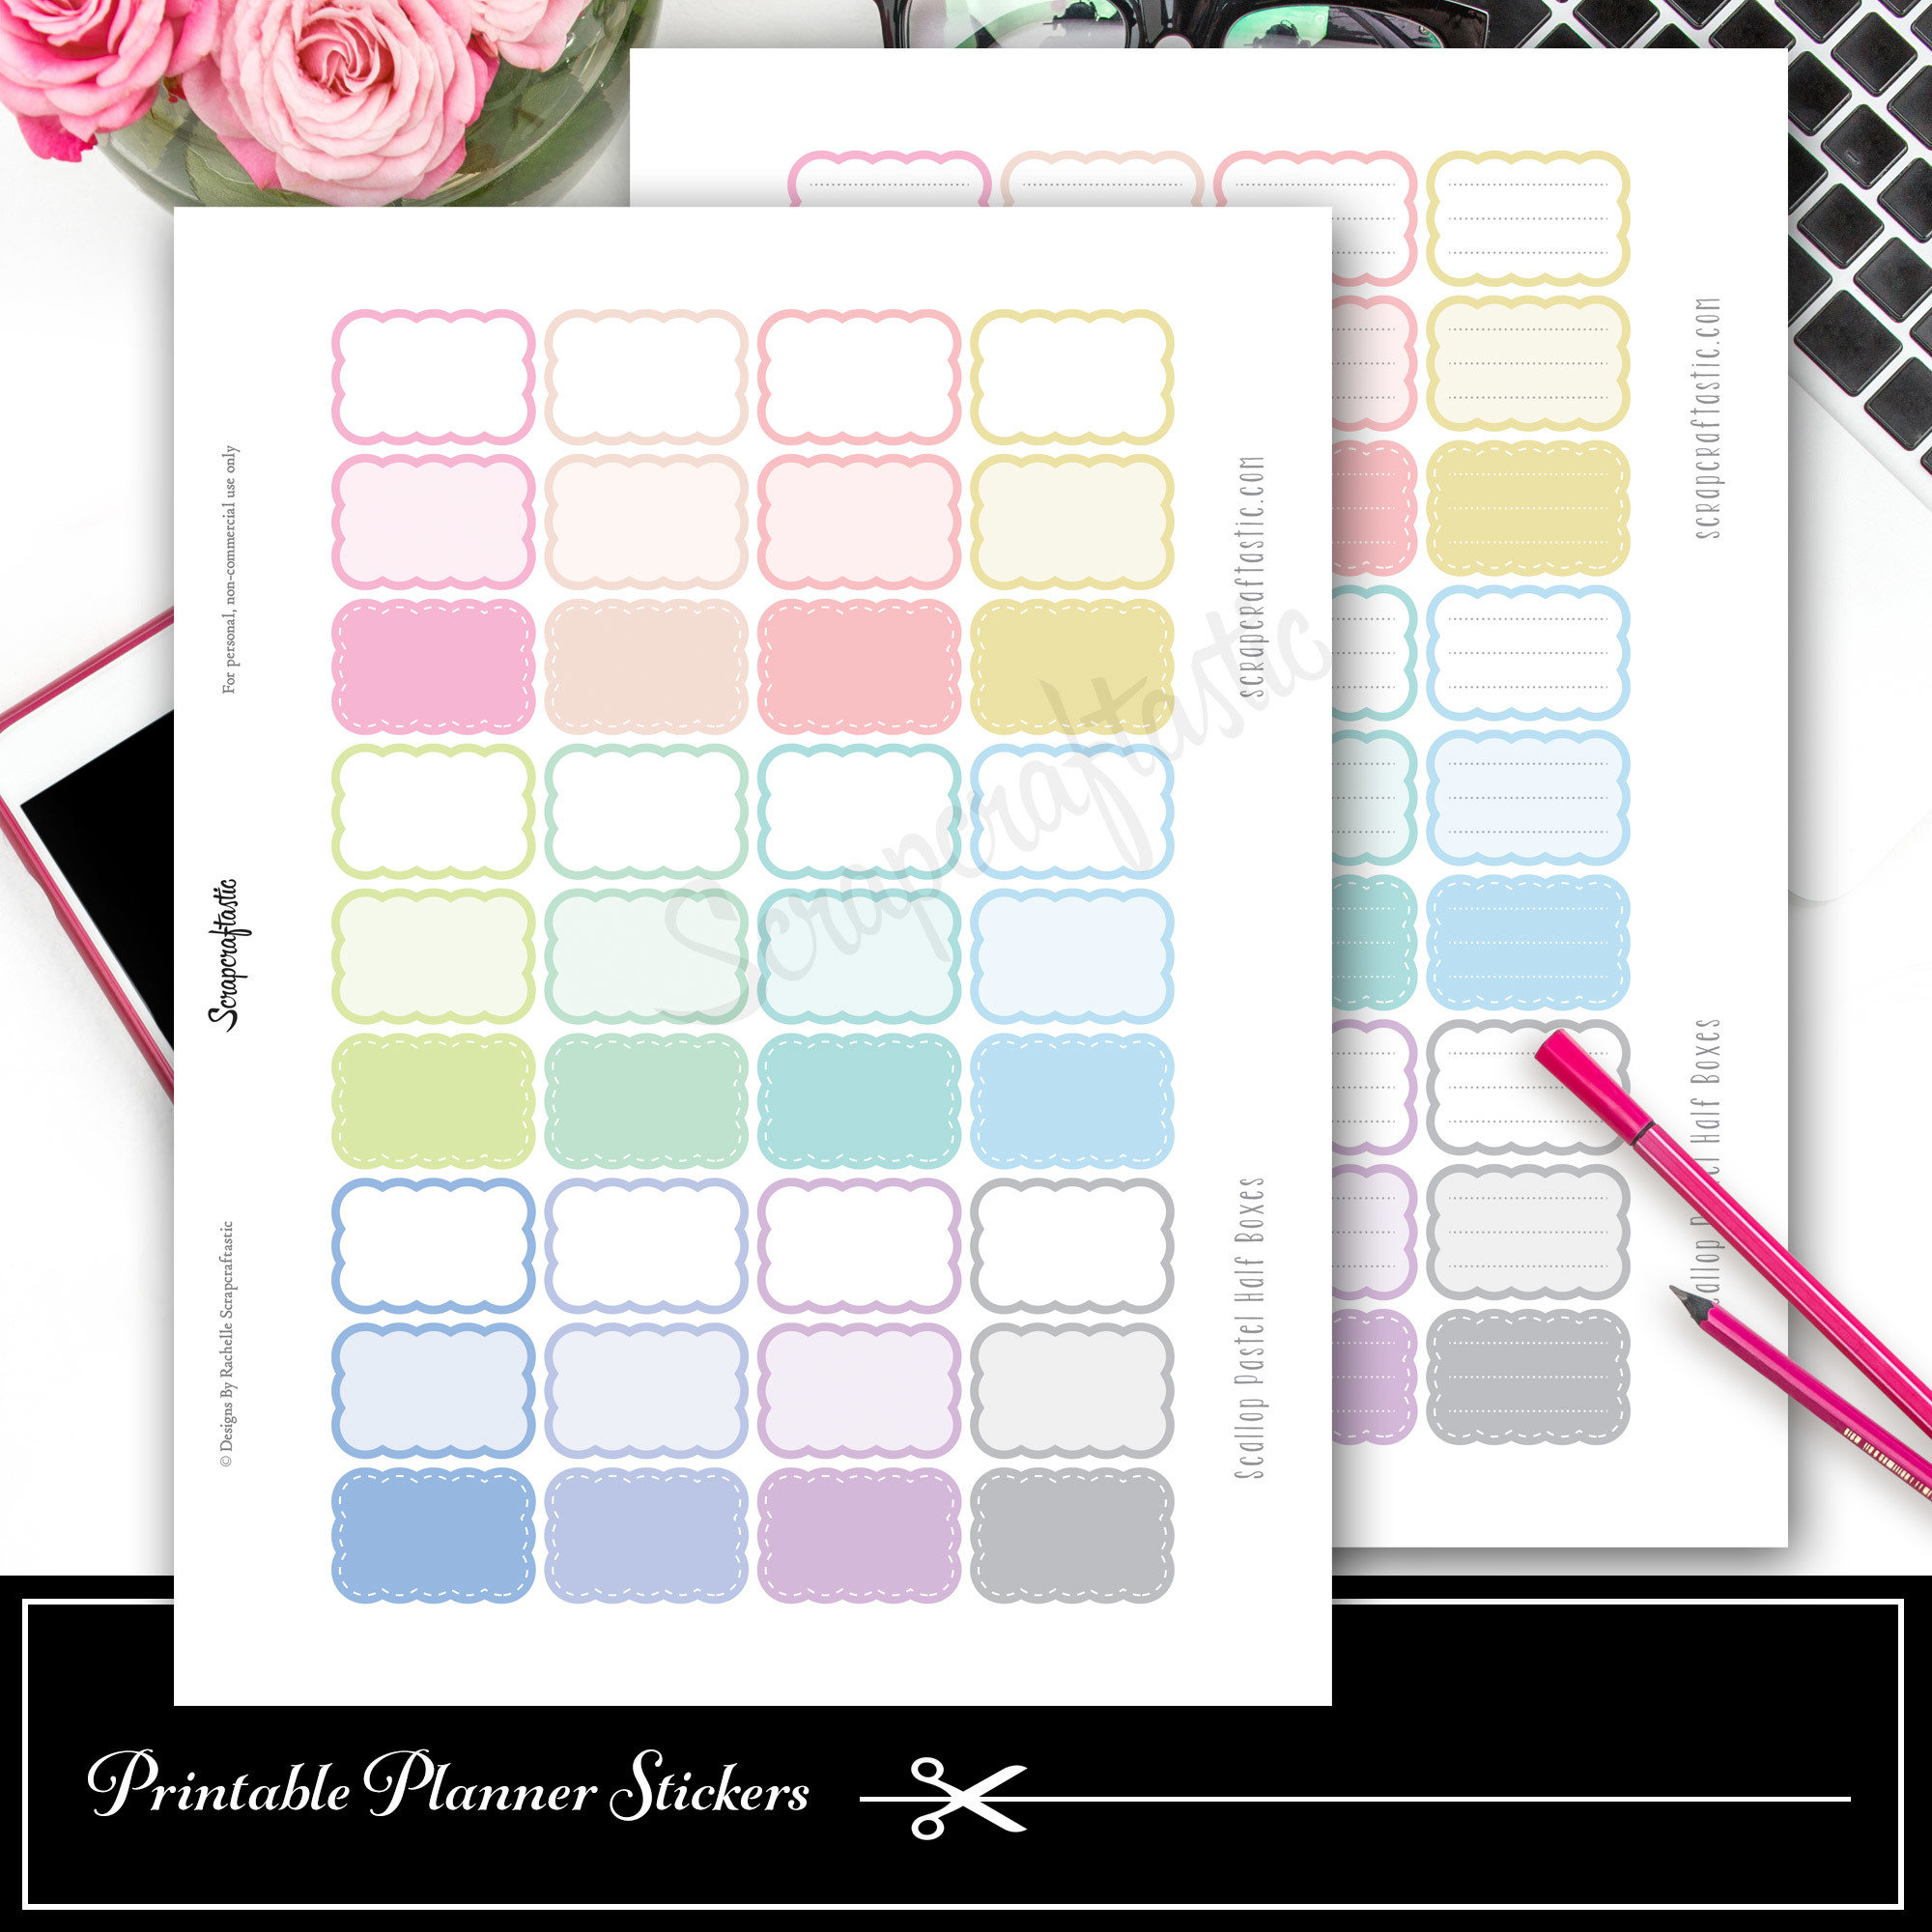 Scallop Pastel Variety Half Box Printable Planner Stickers and Silhouette Cut File 03009